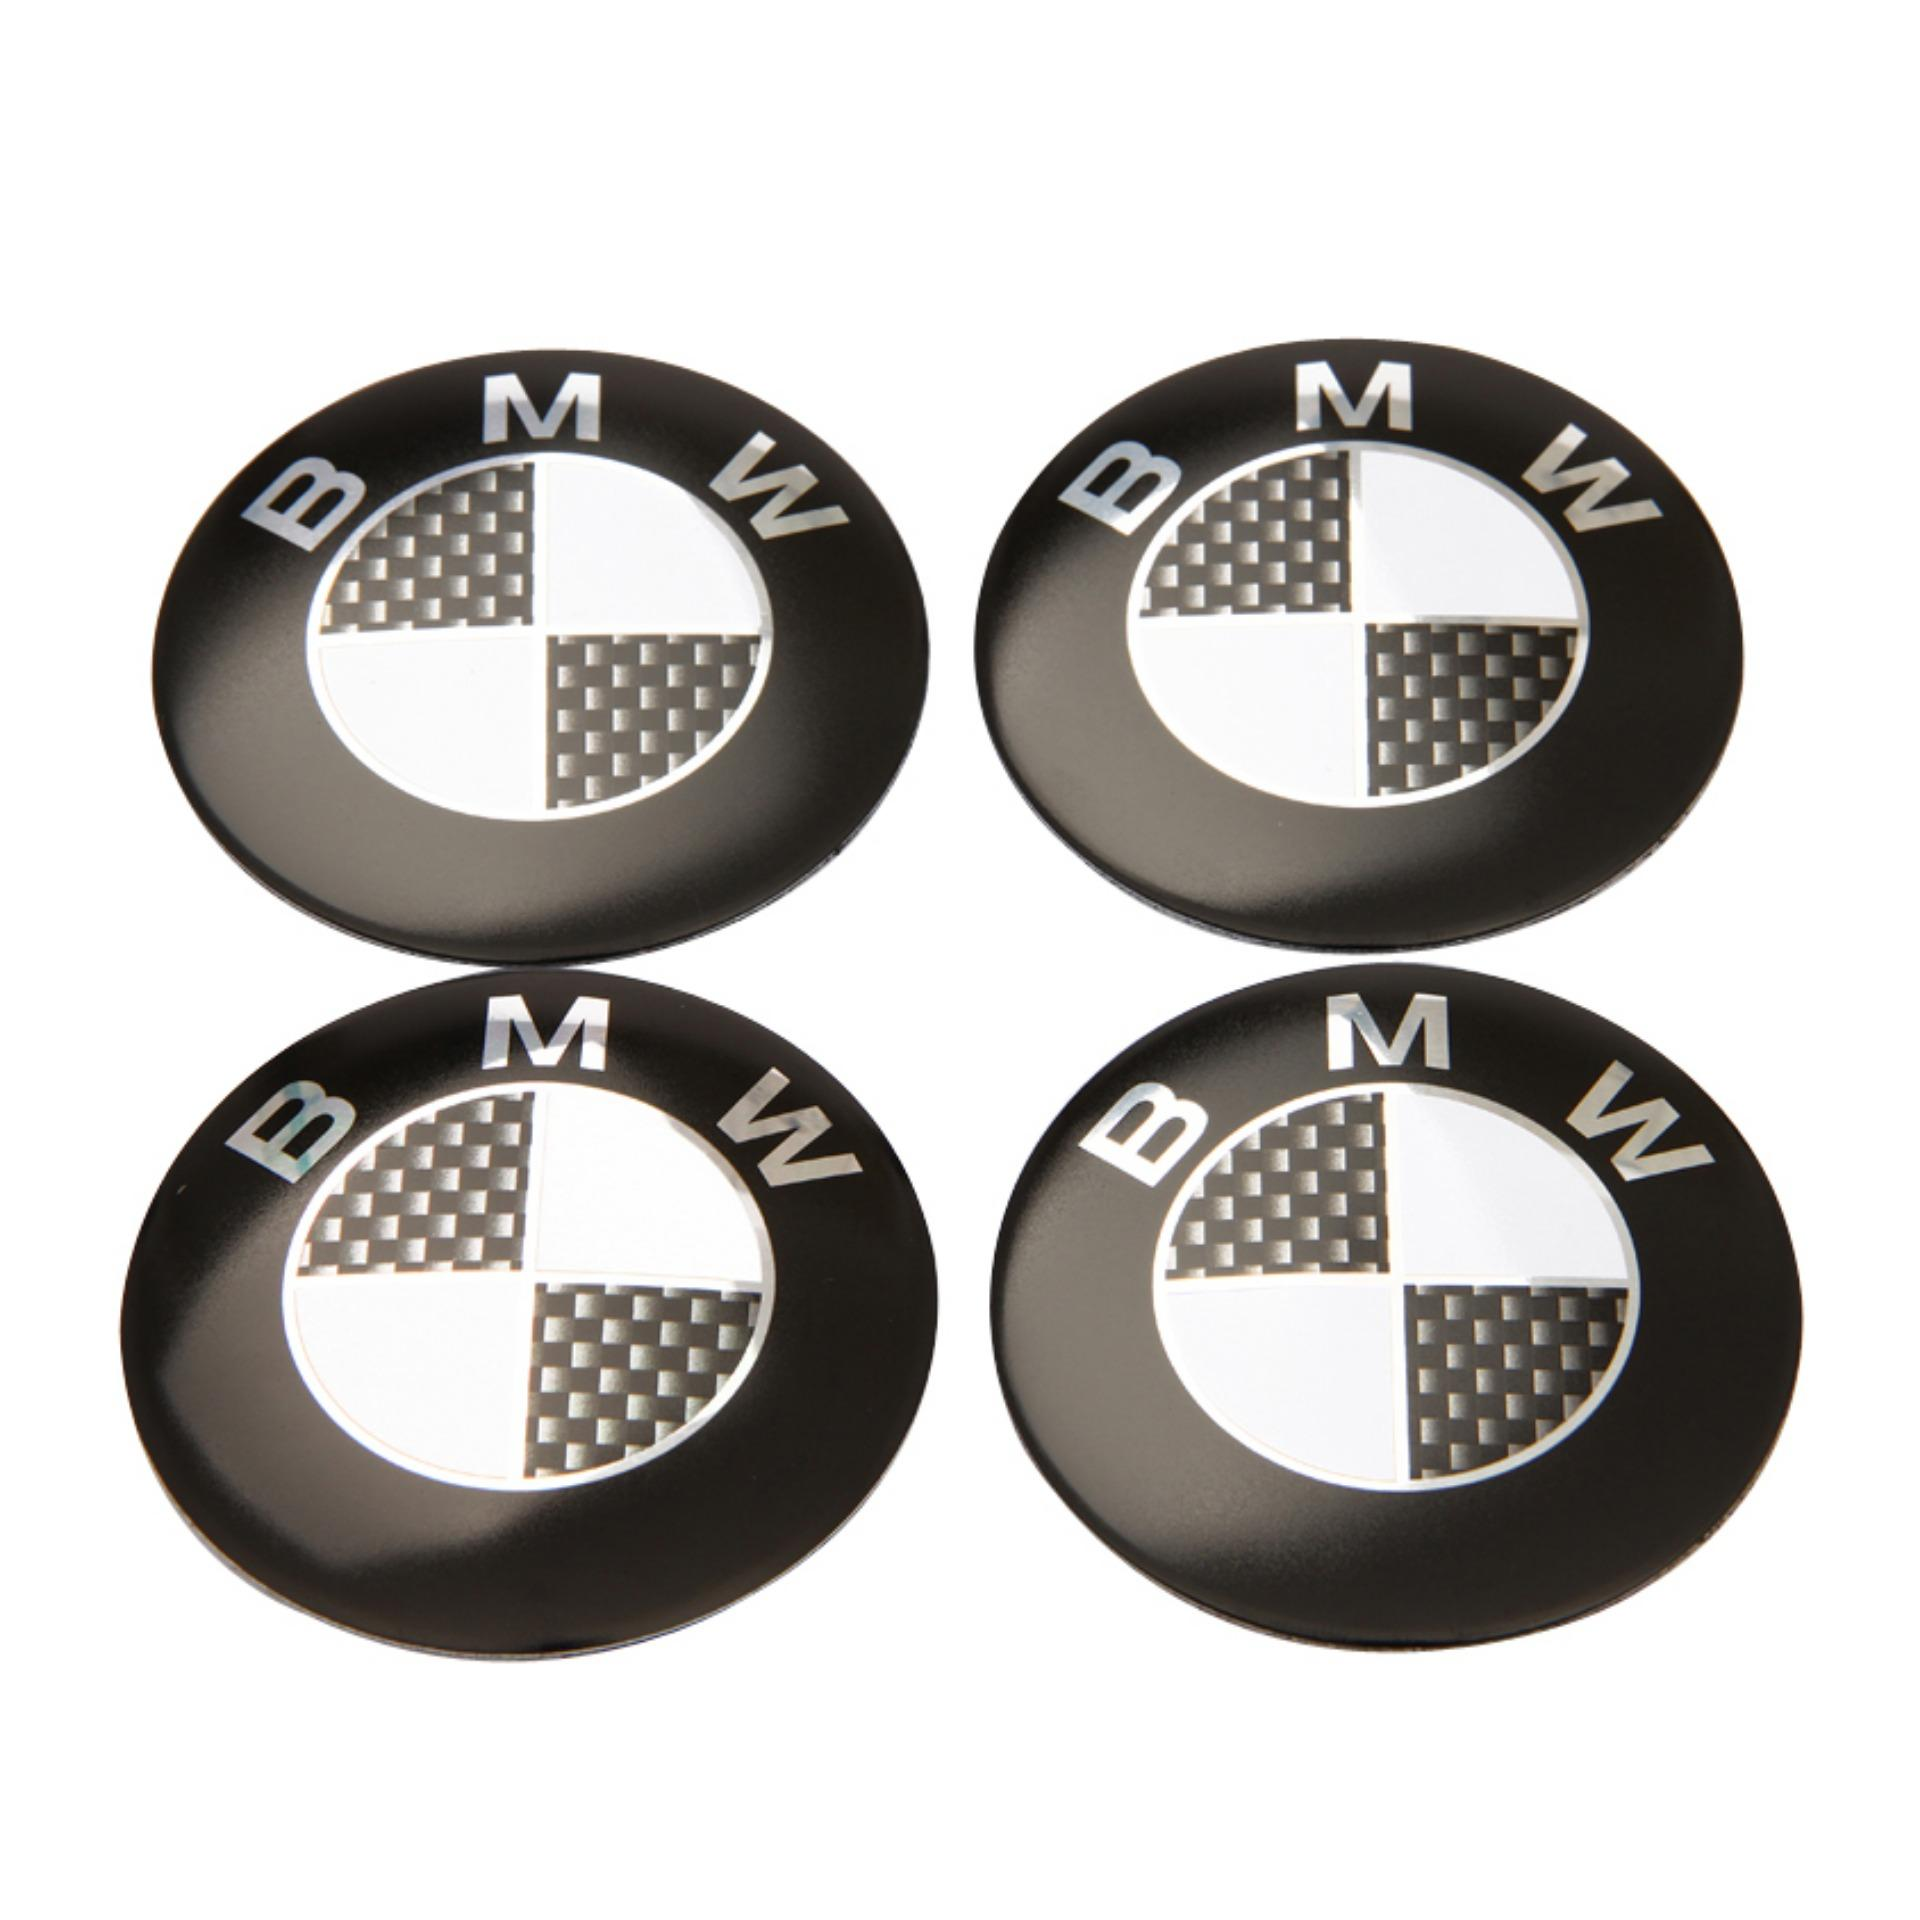 Discount 4Pcs 56 5Mm Car Emblem Wheel Center Hub Caps Badge Covers Sticker For Bmw Logo E46 E39 E90 E60 F10 F30 E36 F20 Intl China